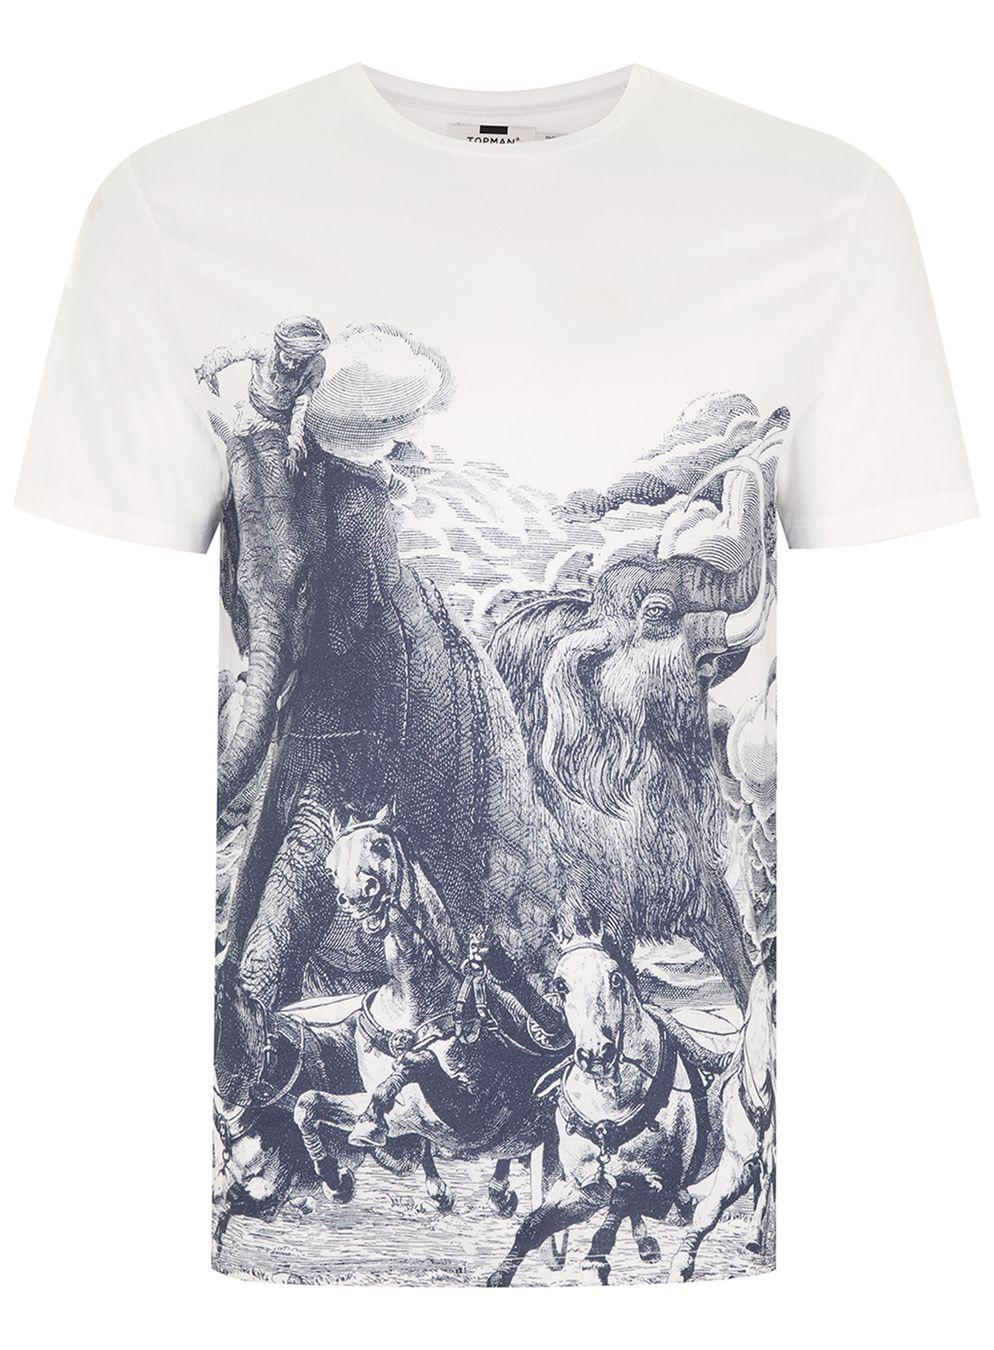 d7b1ed4869017 Lyst - Topman White Elephant Print T-shirt in White for Men